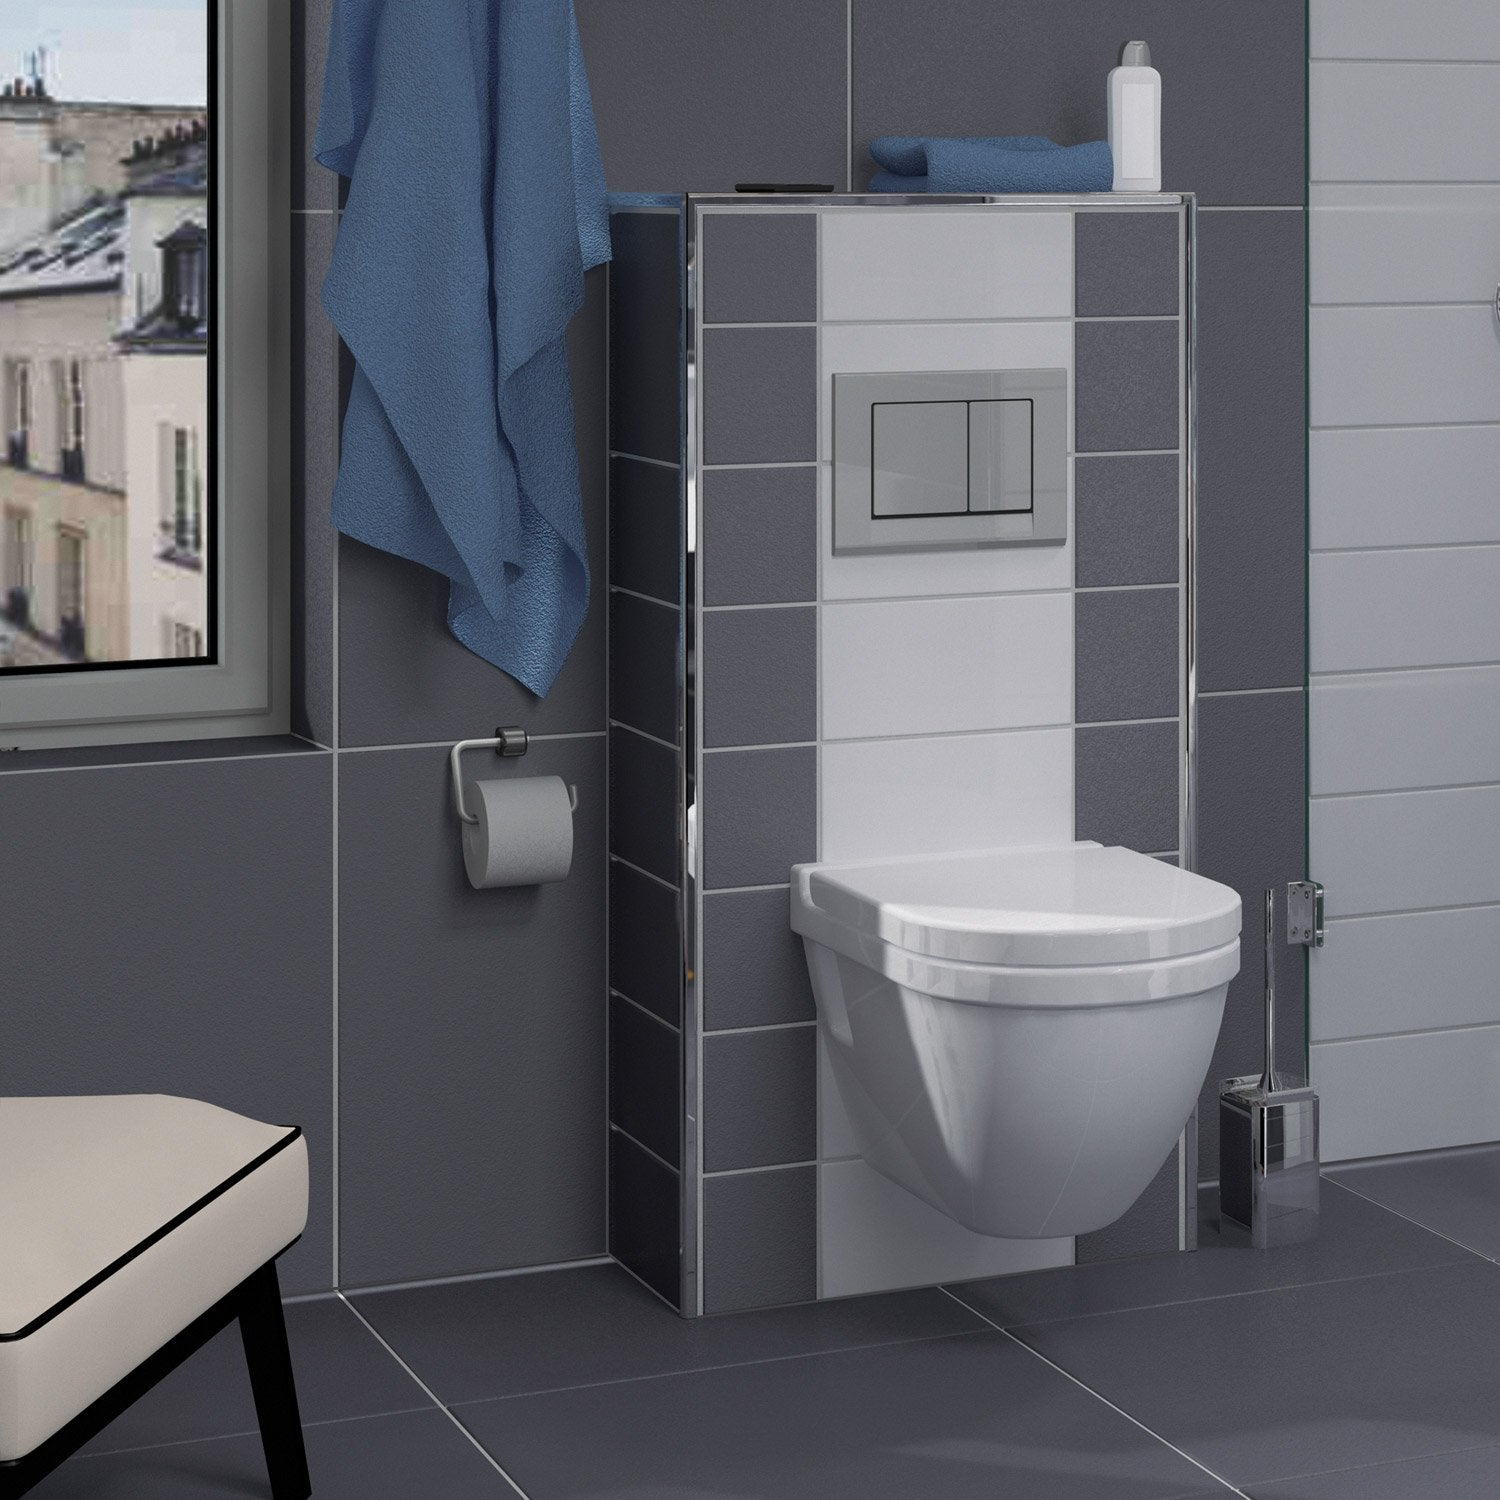 Cuvette Wc Suspendu Carre coffrage wc suspendu l.60xh.1250xp.30 cm, lux elements habillage  bati-support